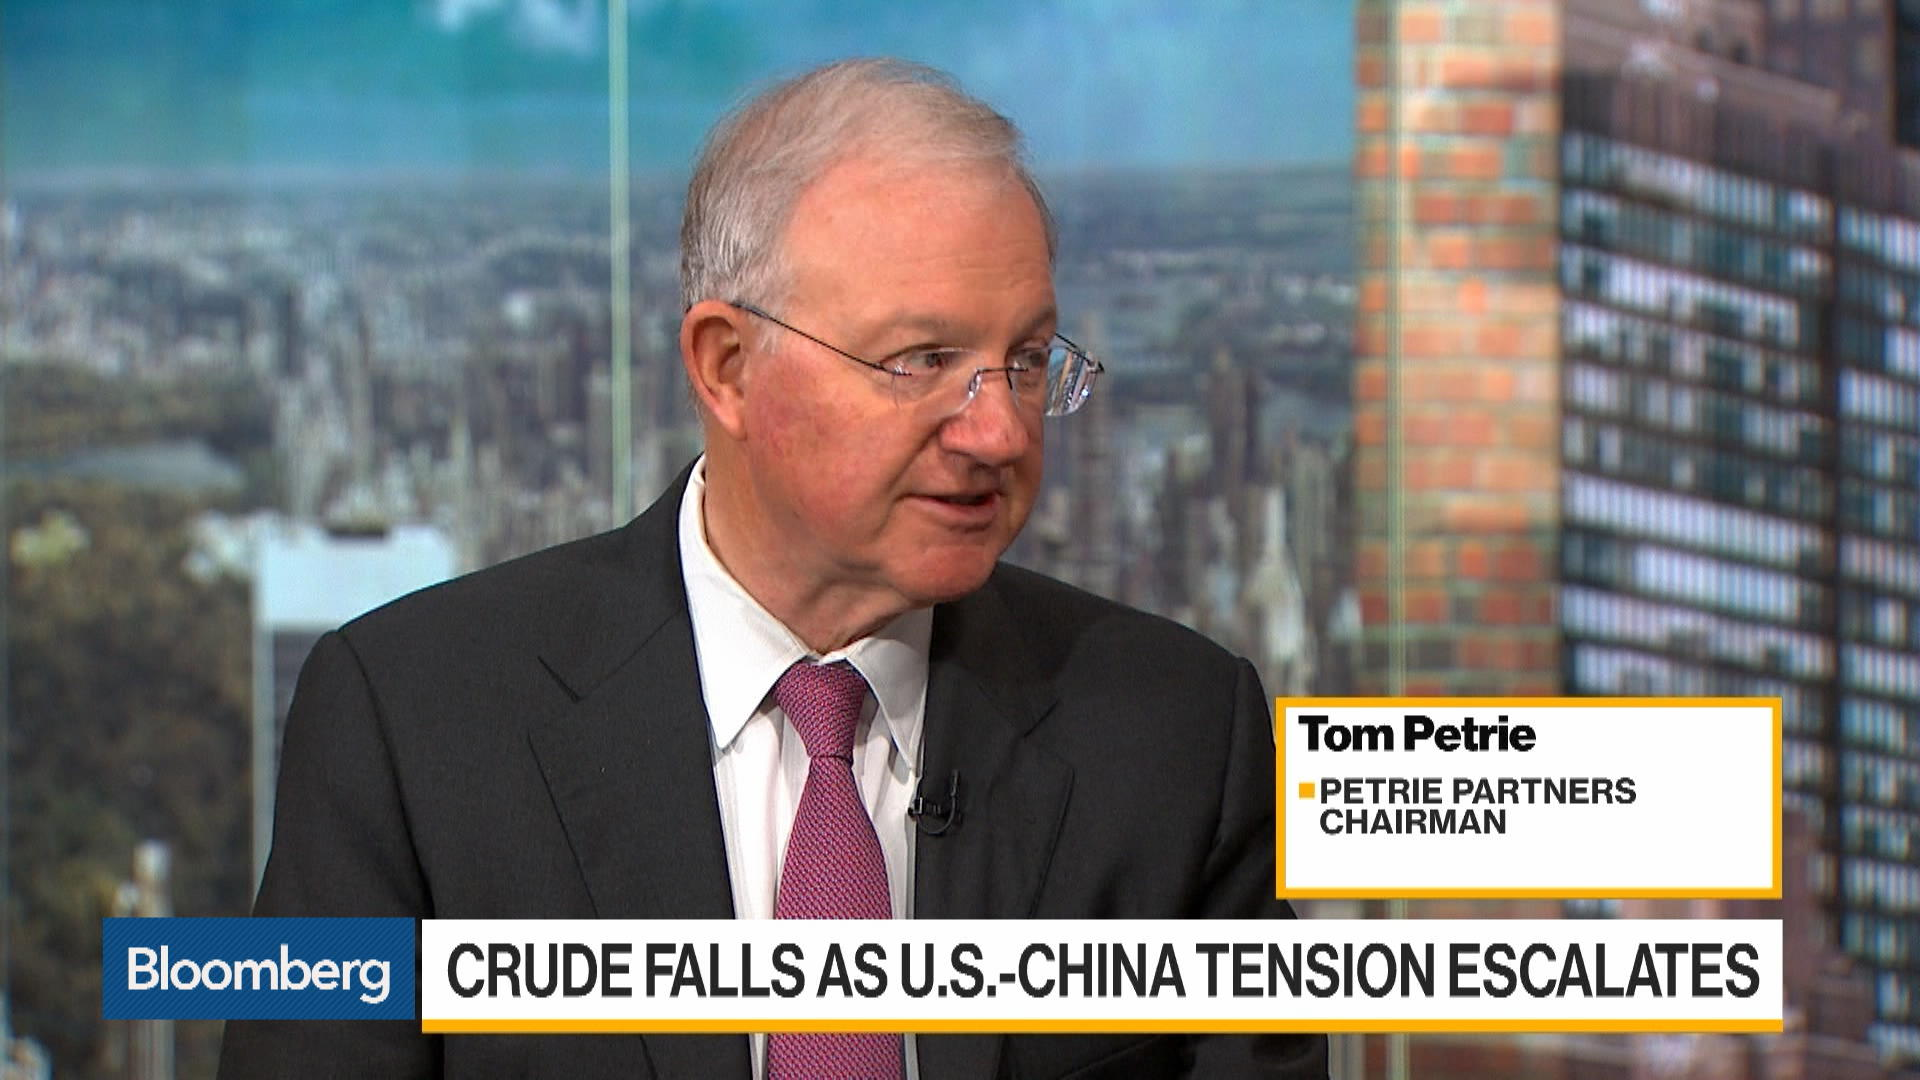 Oil Industry Consolidation to Increase: Tom Petrie